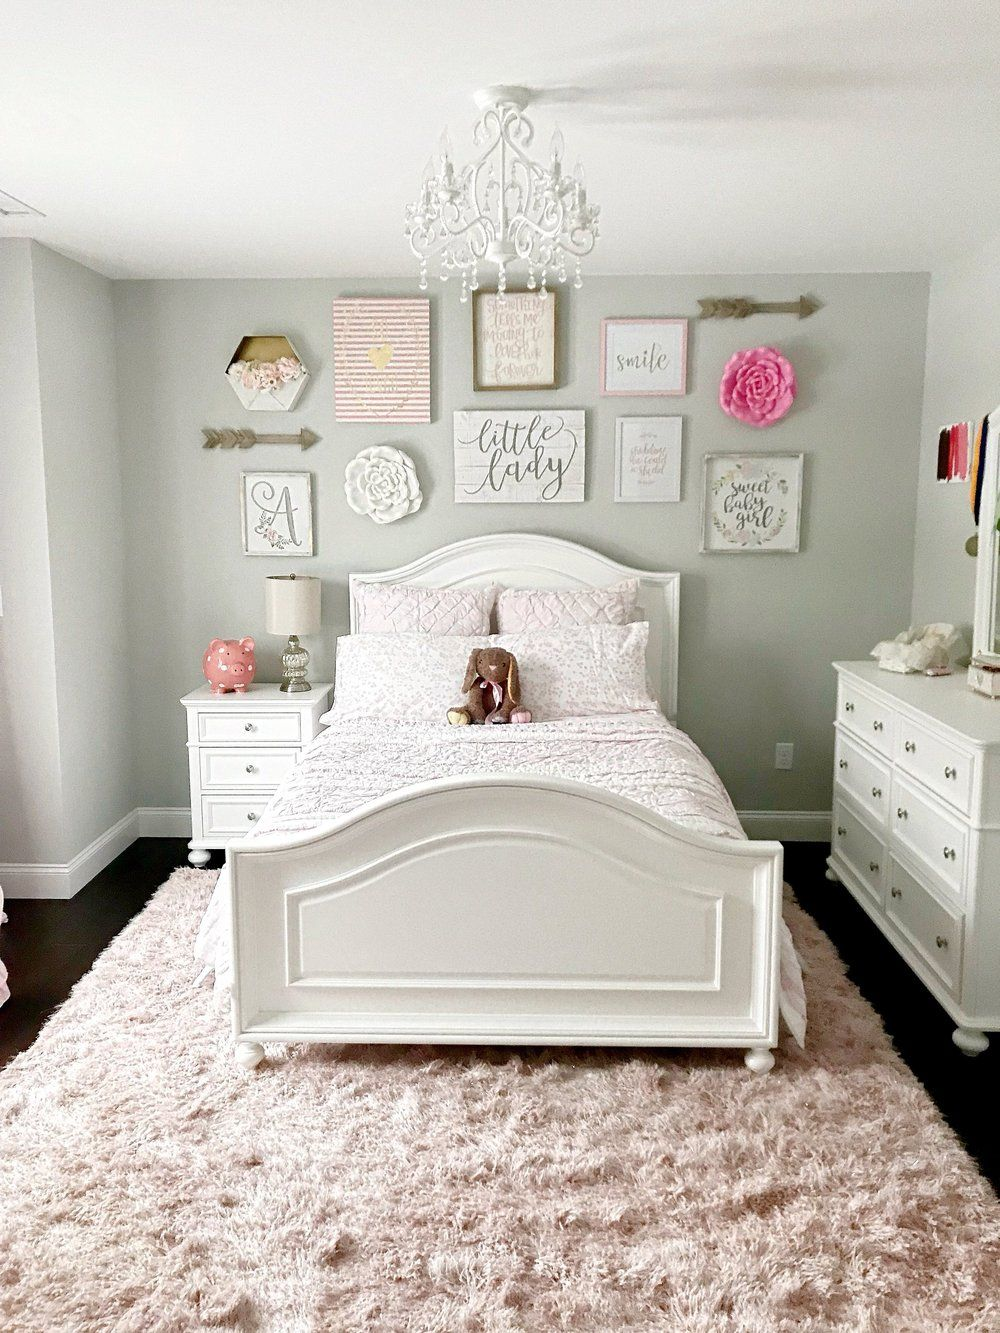 How to make a wall collage tips for tackling it with ease